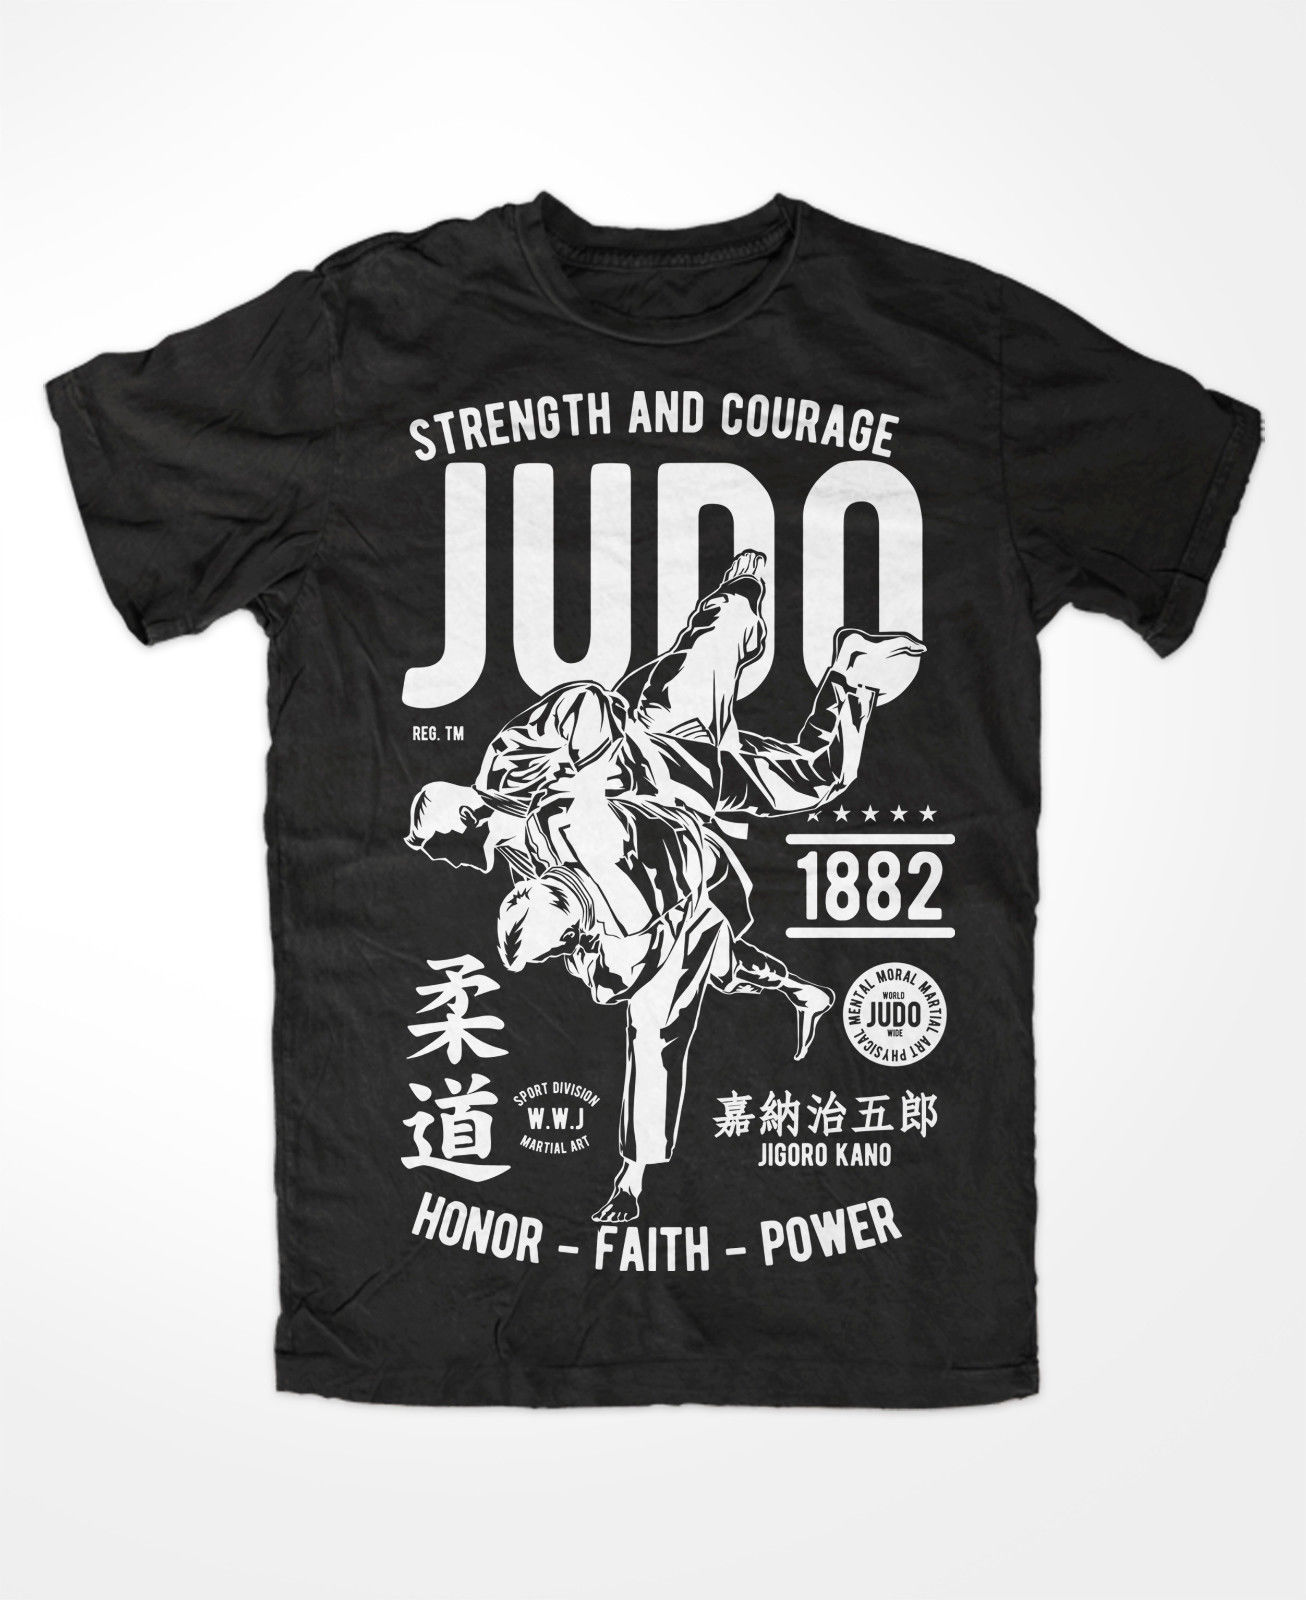 Newest 2018 Summer Short Sleeves Cotton Fashion Judo   T  -  Shirt   Kampfsport Muay Thai Ringen Klassik Funshirt Boxen Judokat   Shirt